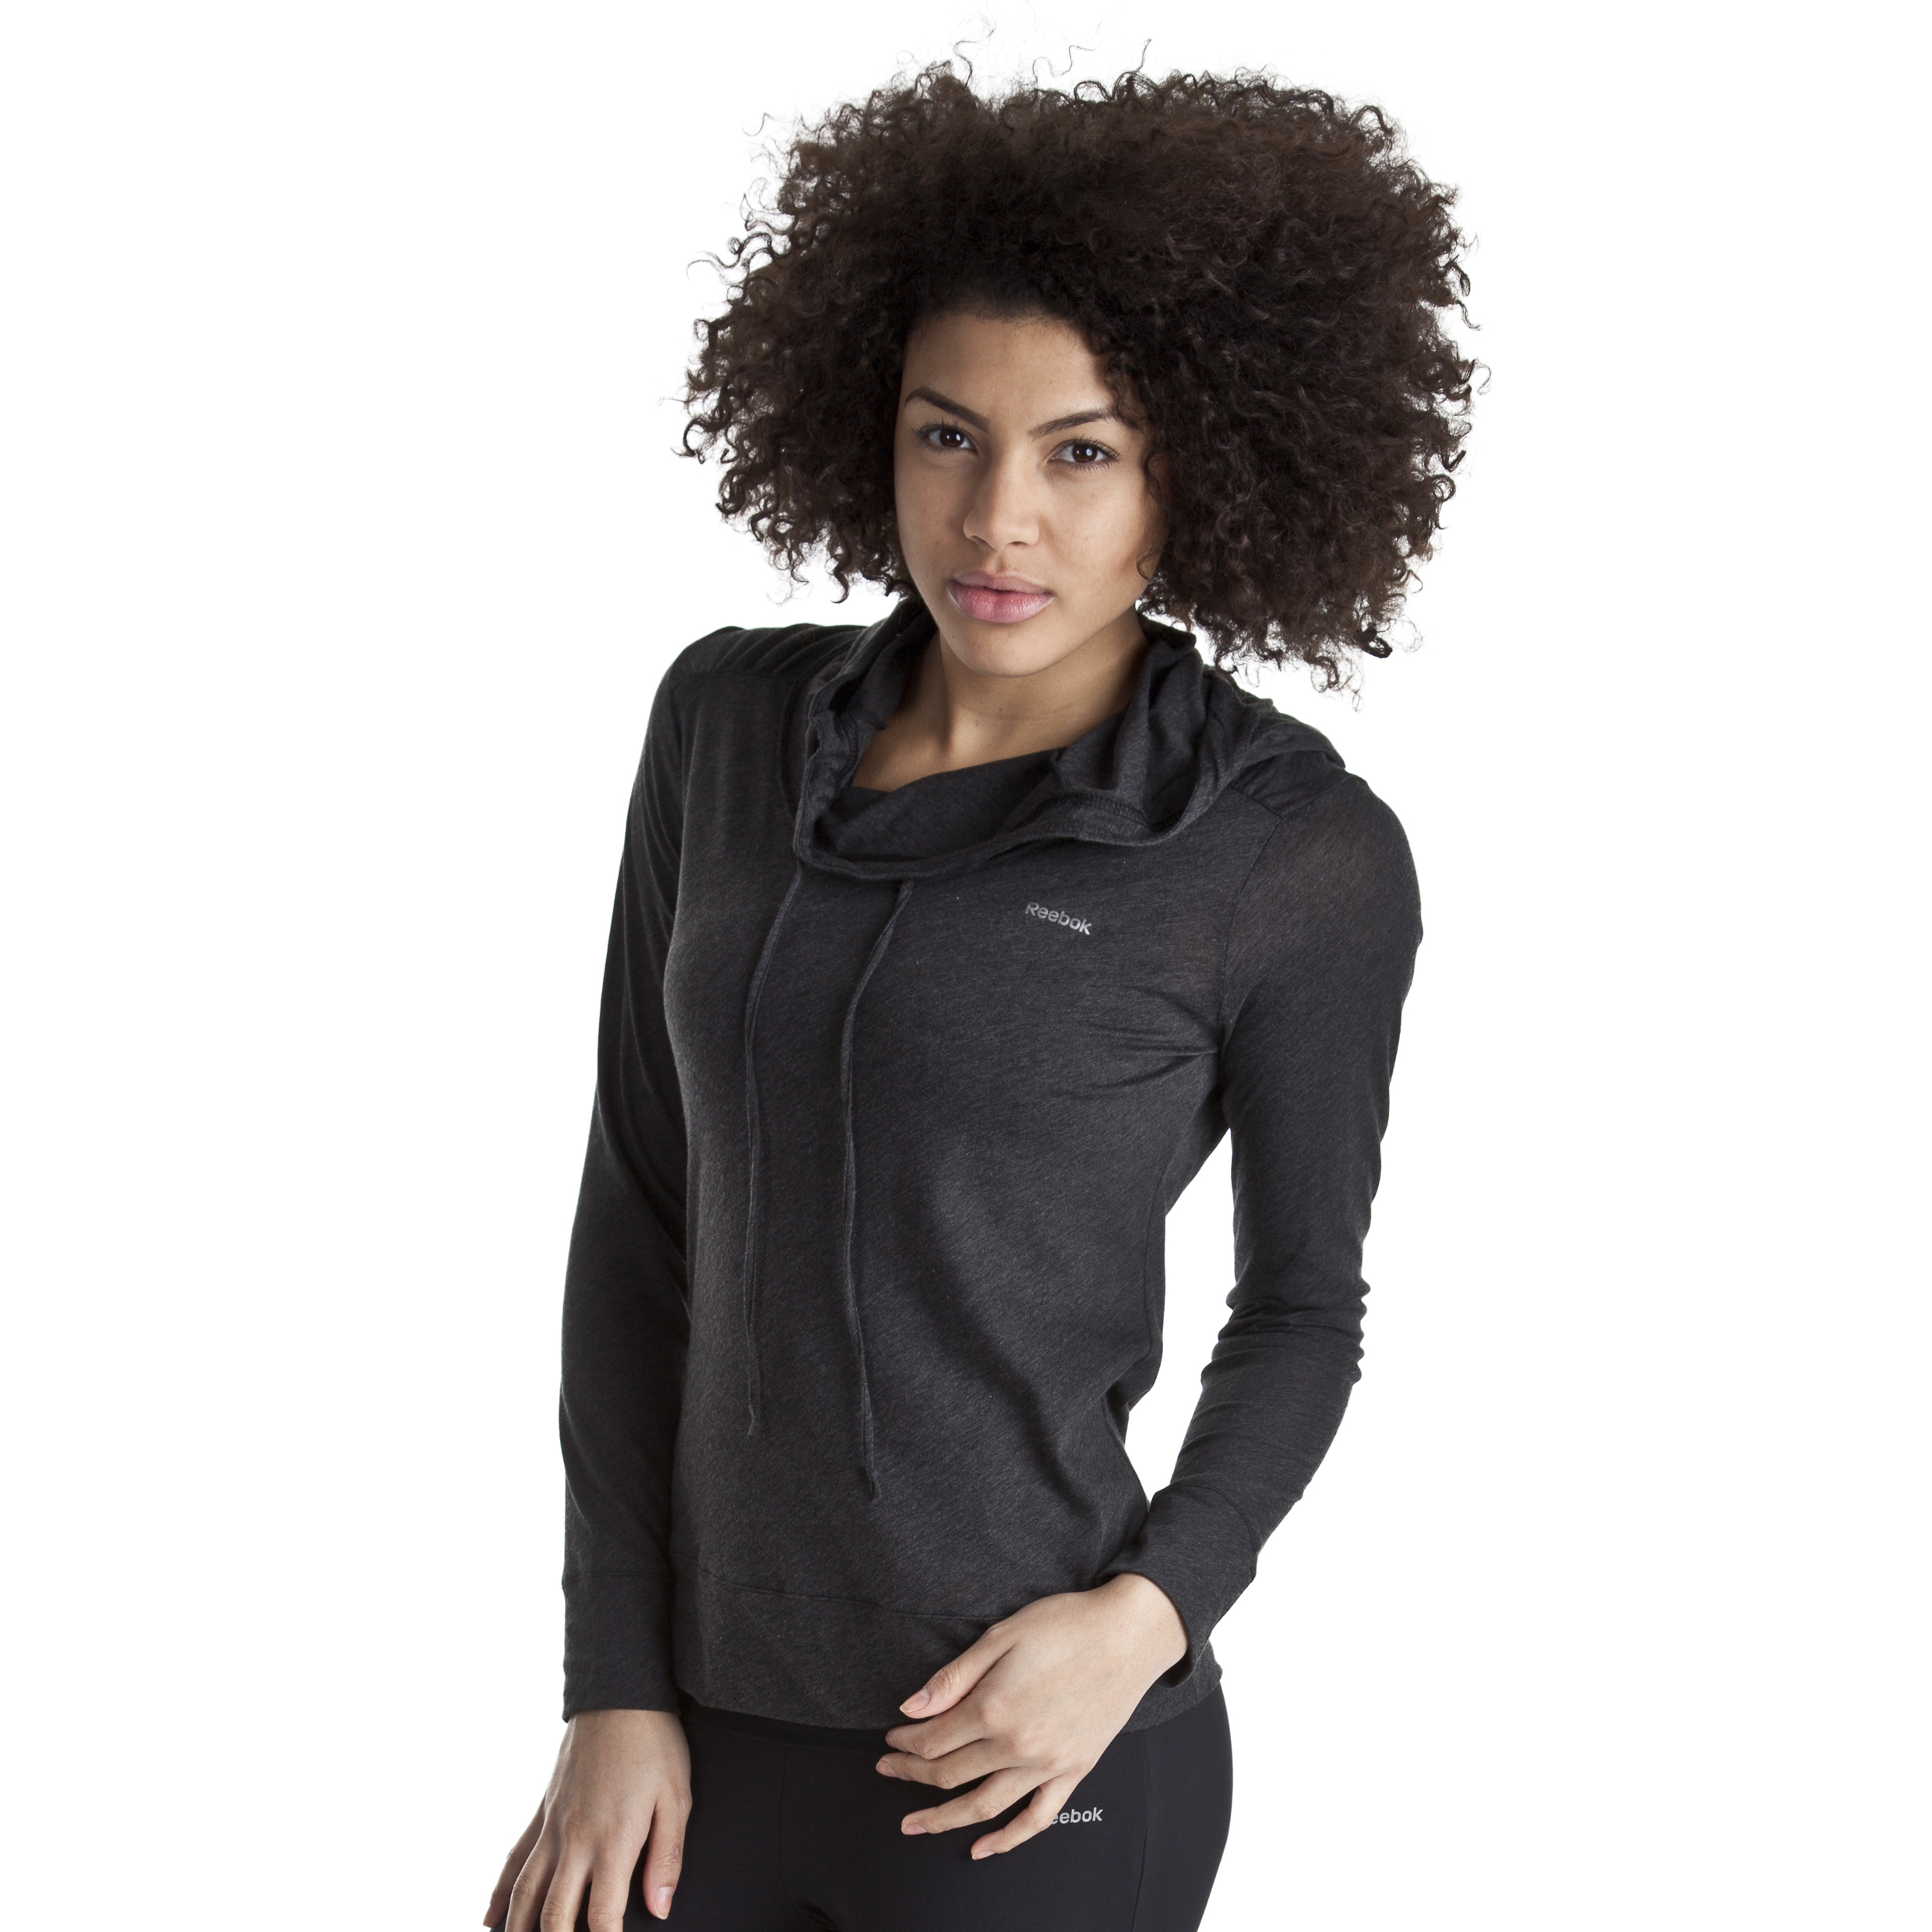 Reebok EasyTone Hoody - Black Melange - Women